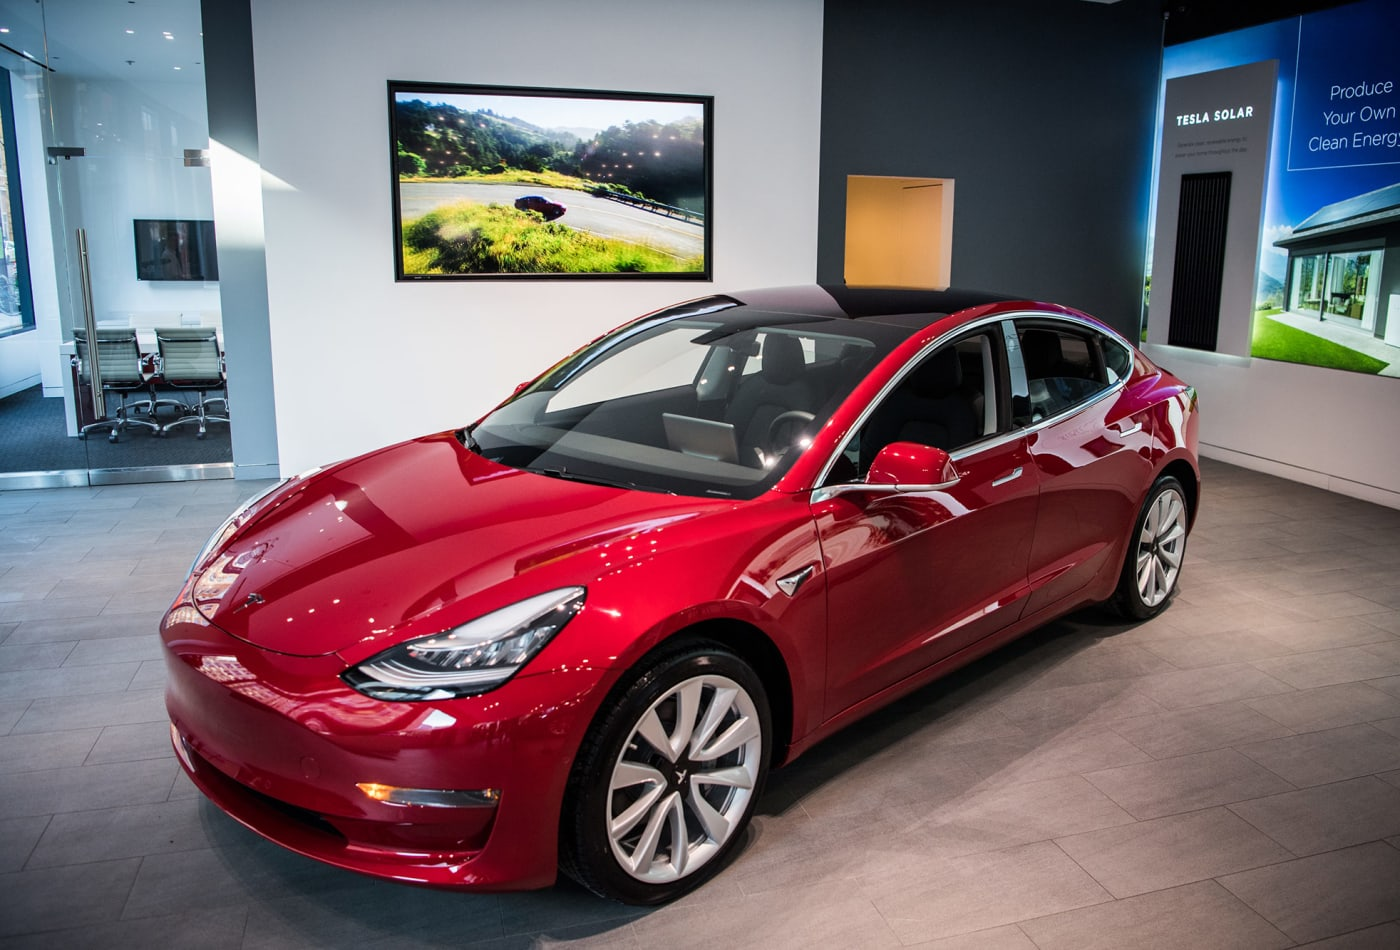 Tesla Model 3 Was Top Selling EV in the Netherlands for August 2020